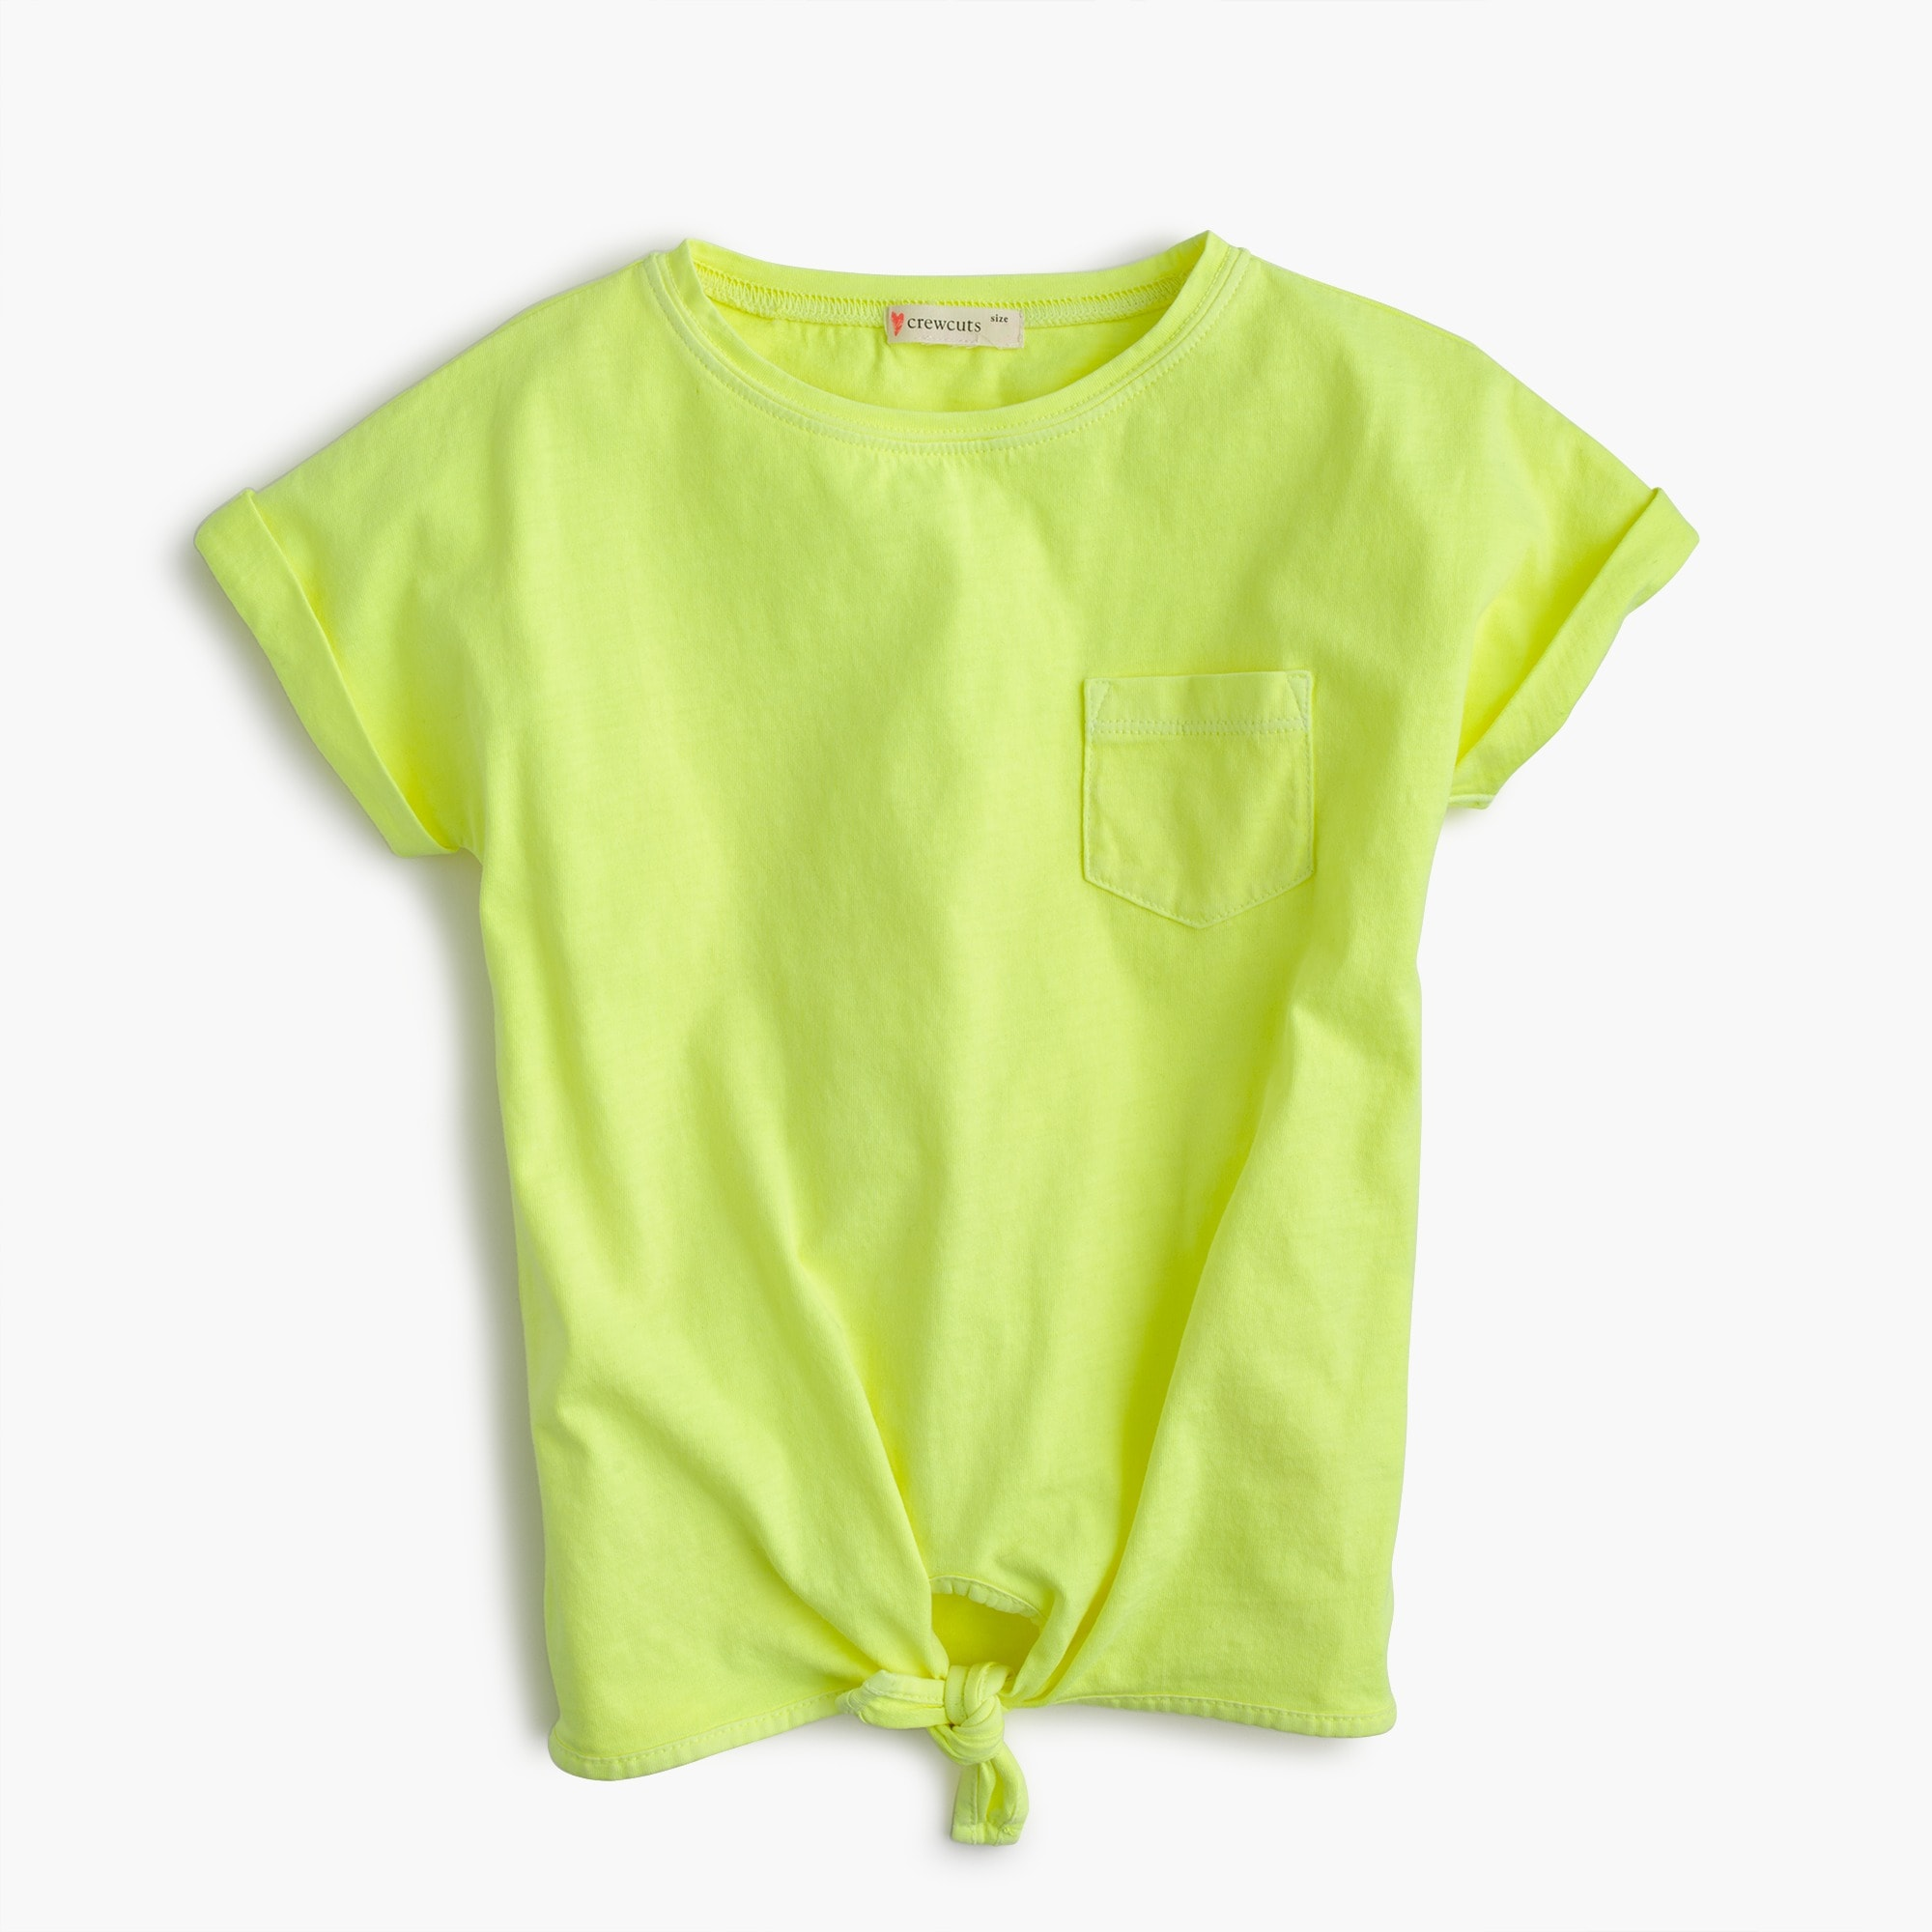 Girls' tie-front T-shirt girl new arrivals c